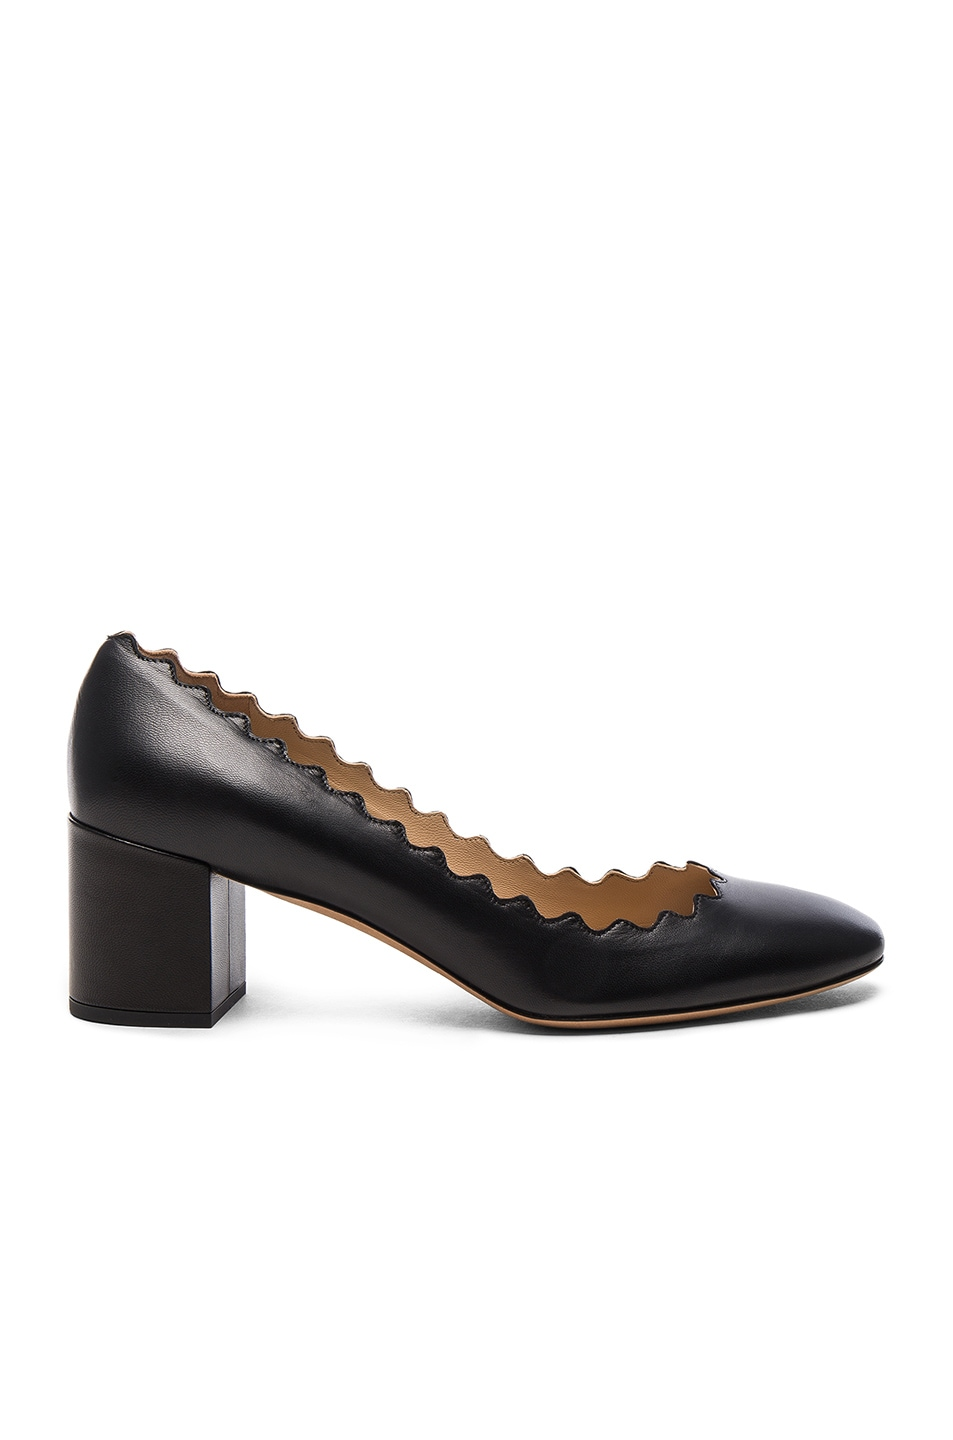 Image 1 of Chloe Lauren Leather Scallop Pumps in Black